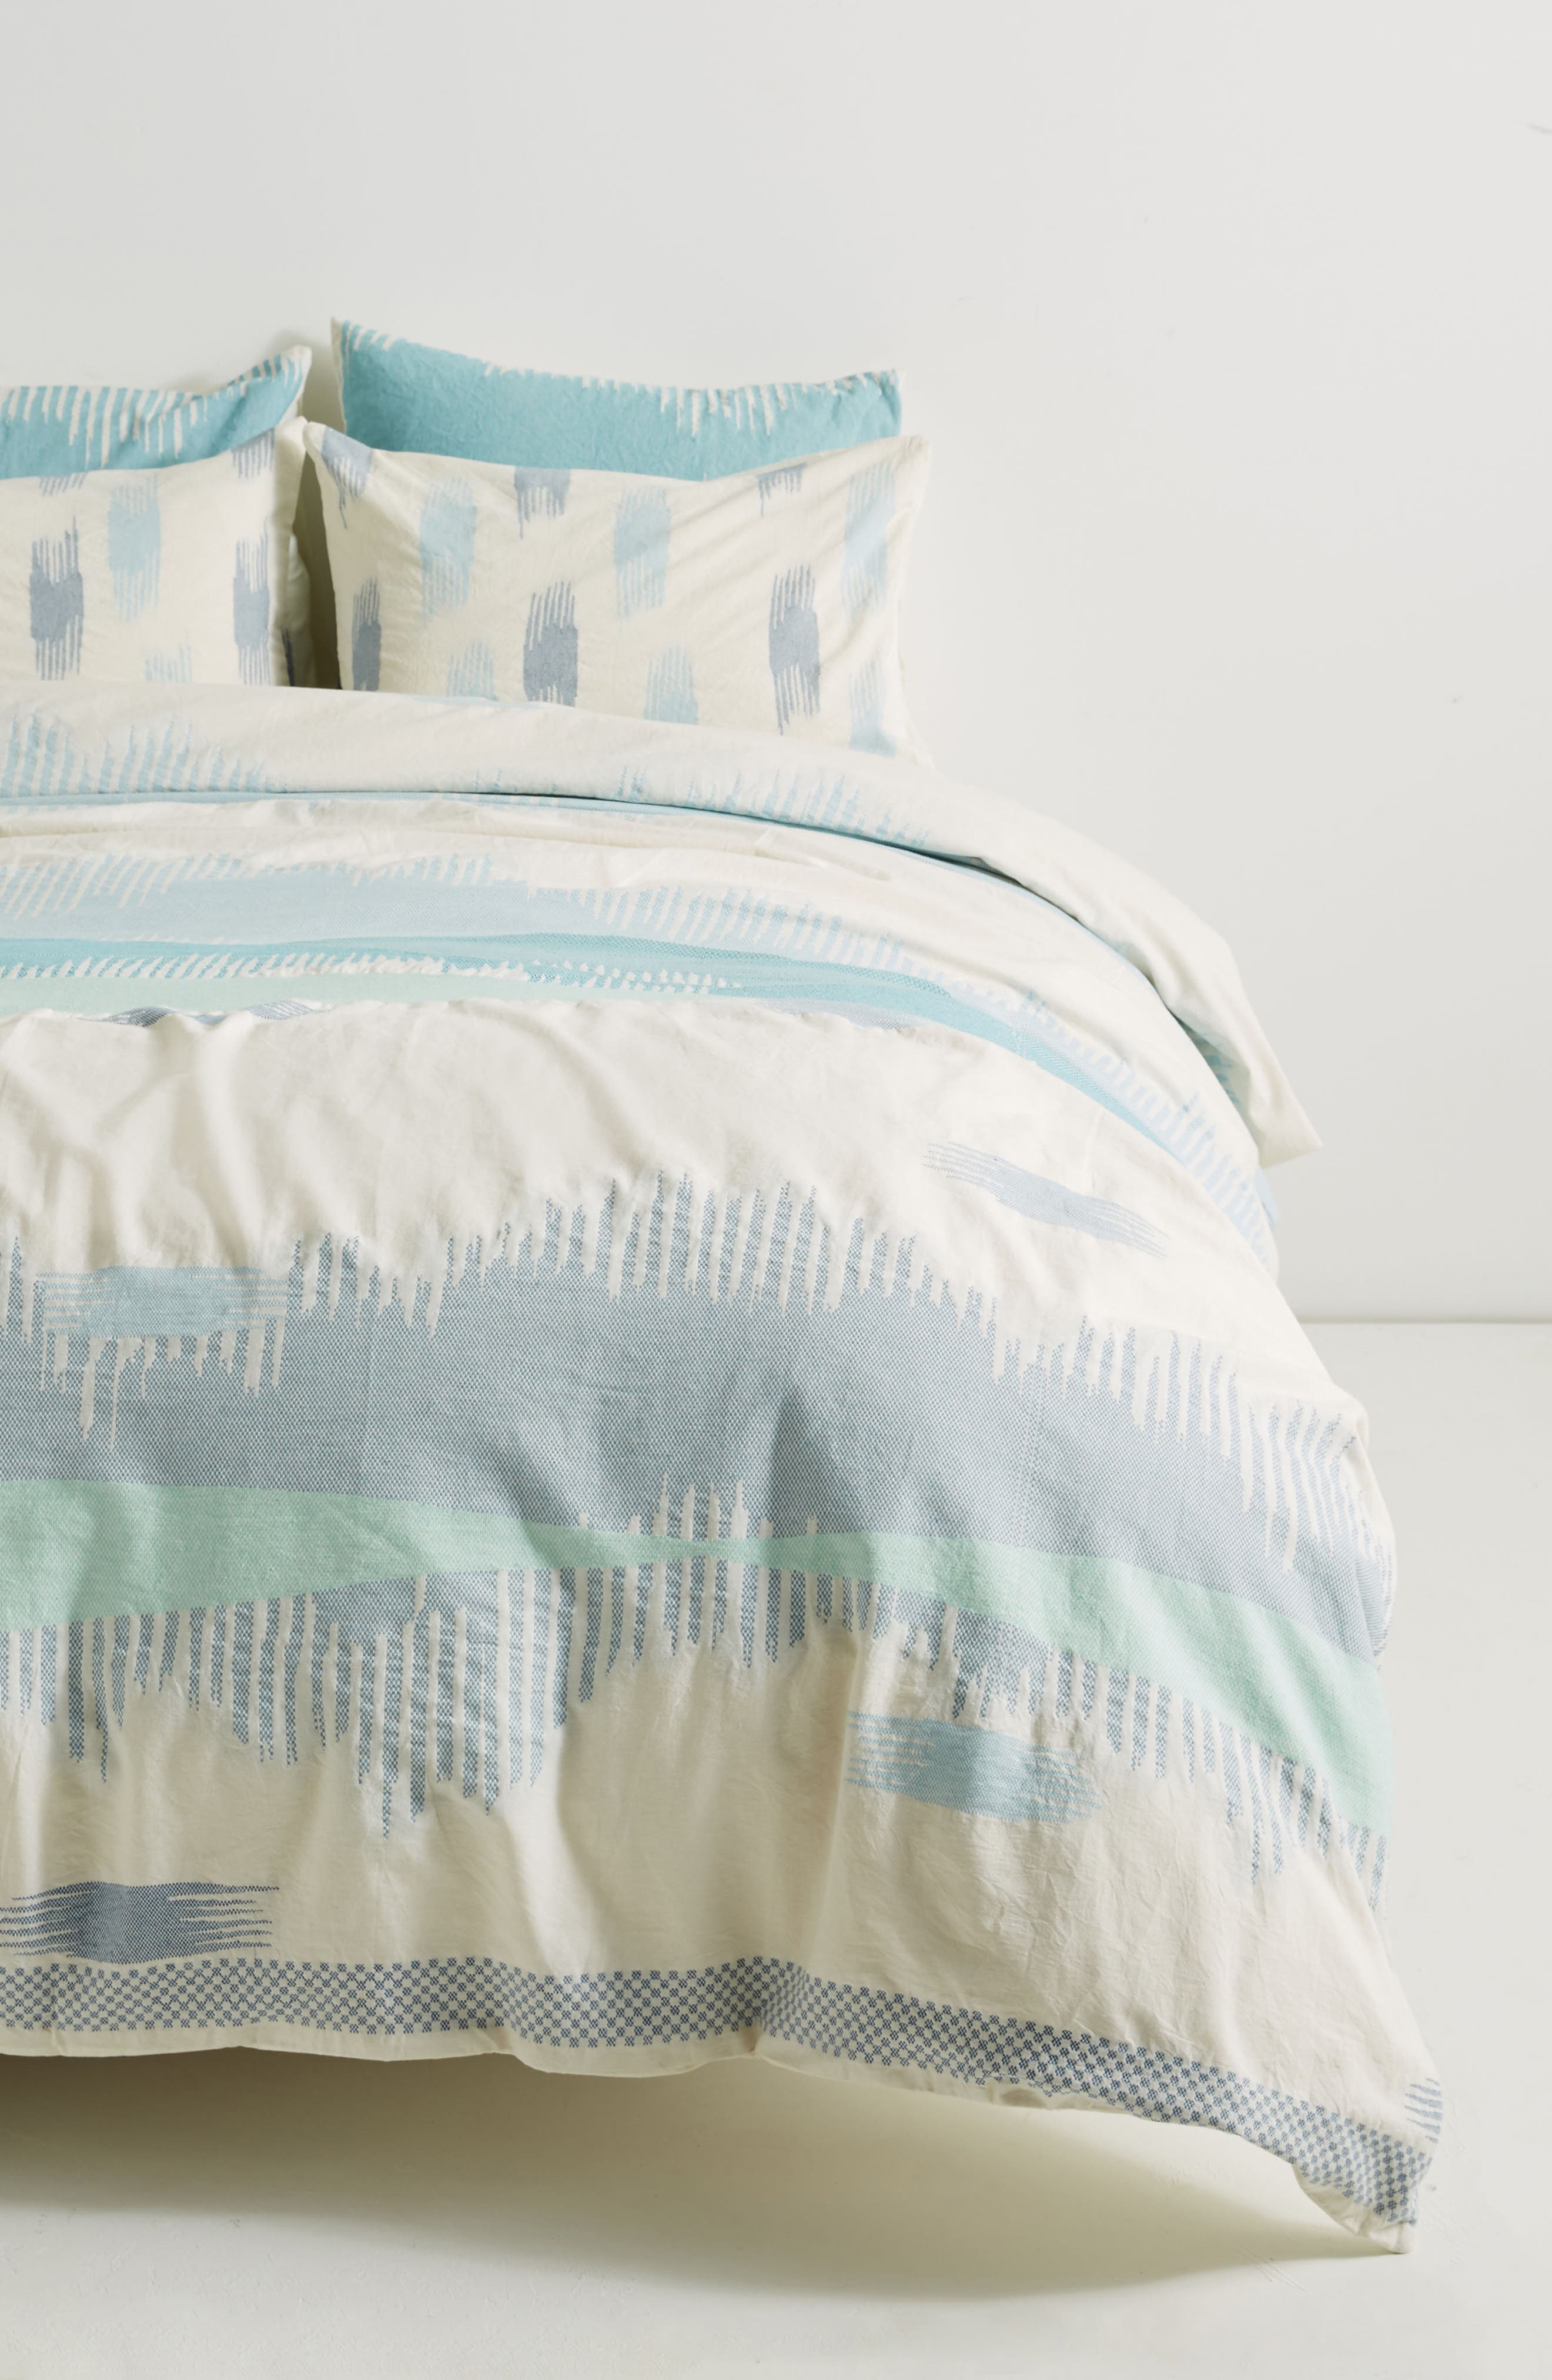 Woven Calera Duvet Cover,                         Main,                         color, Blue